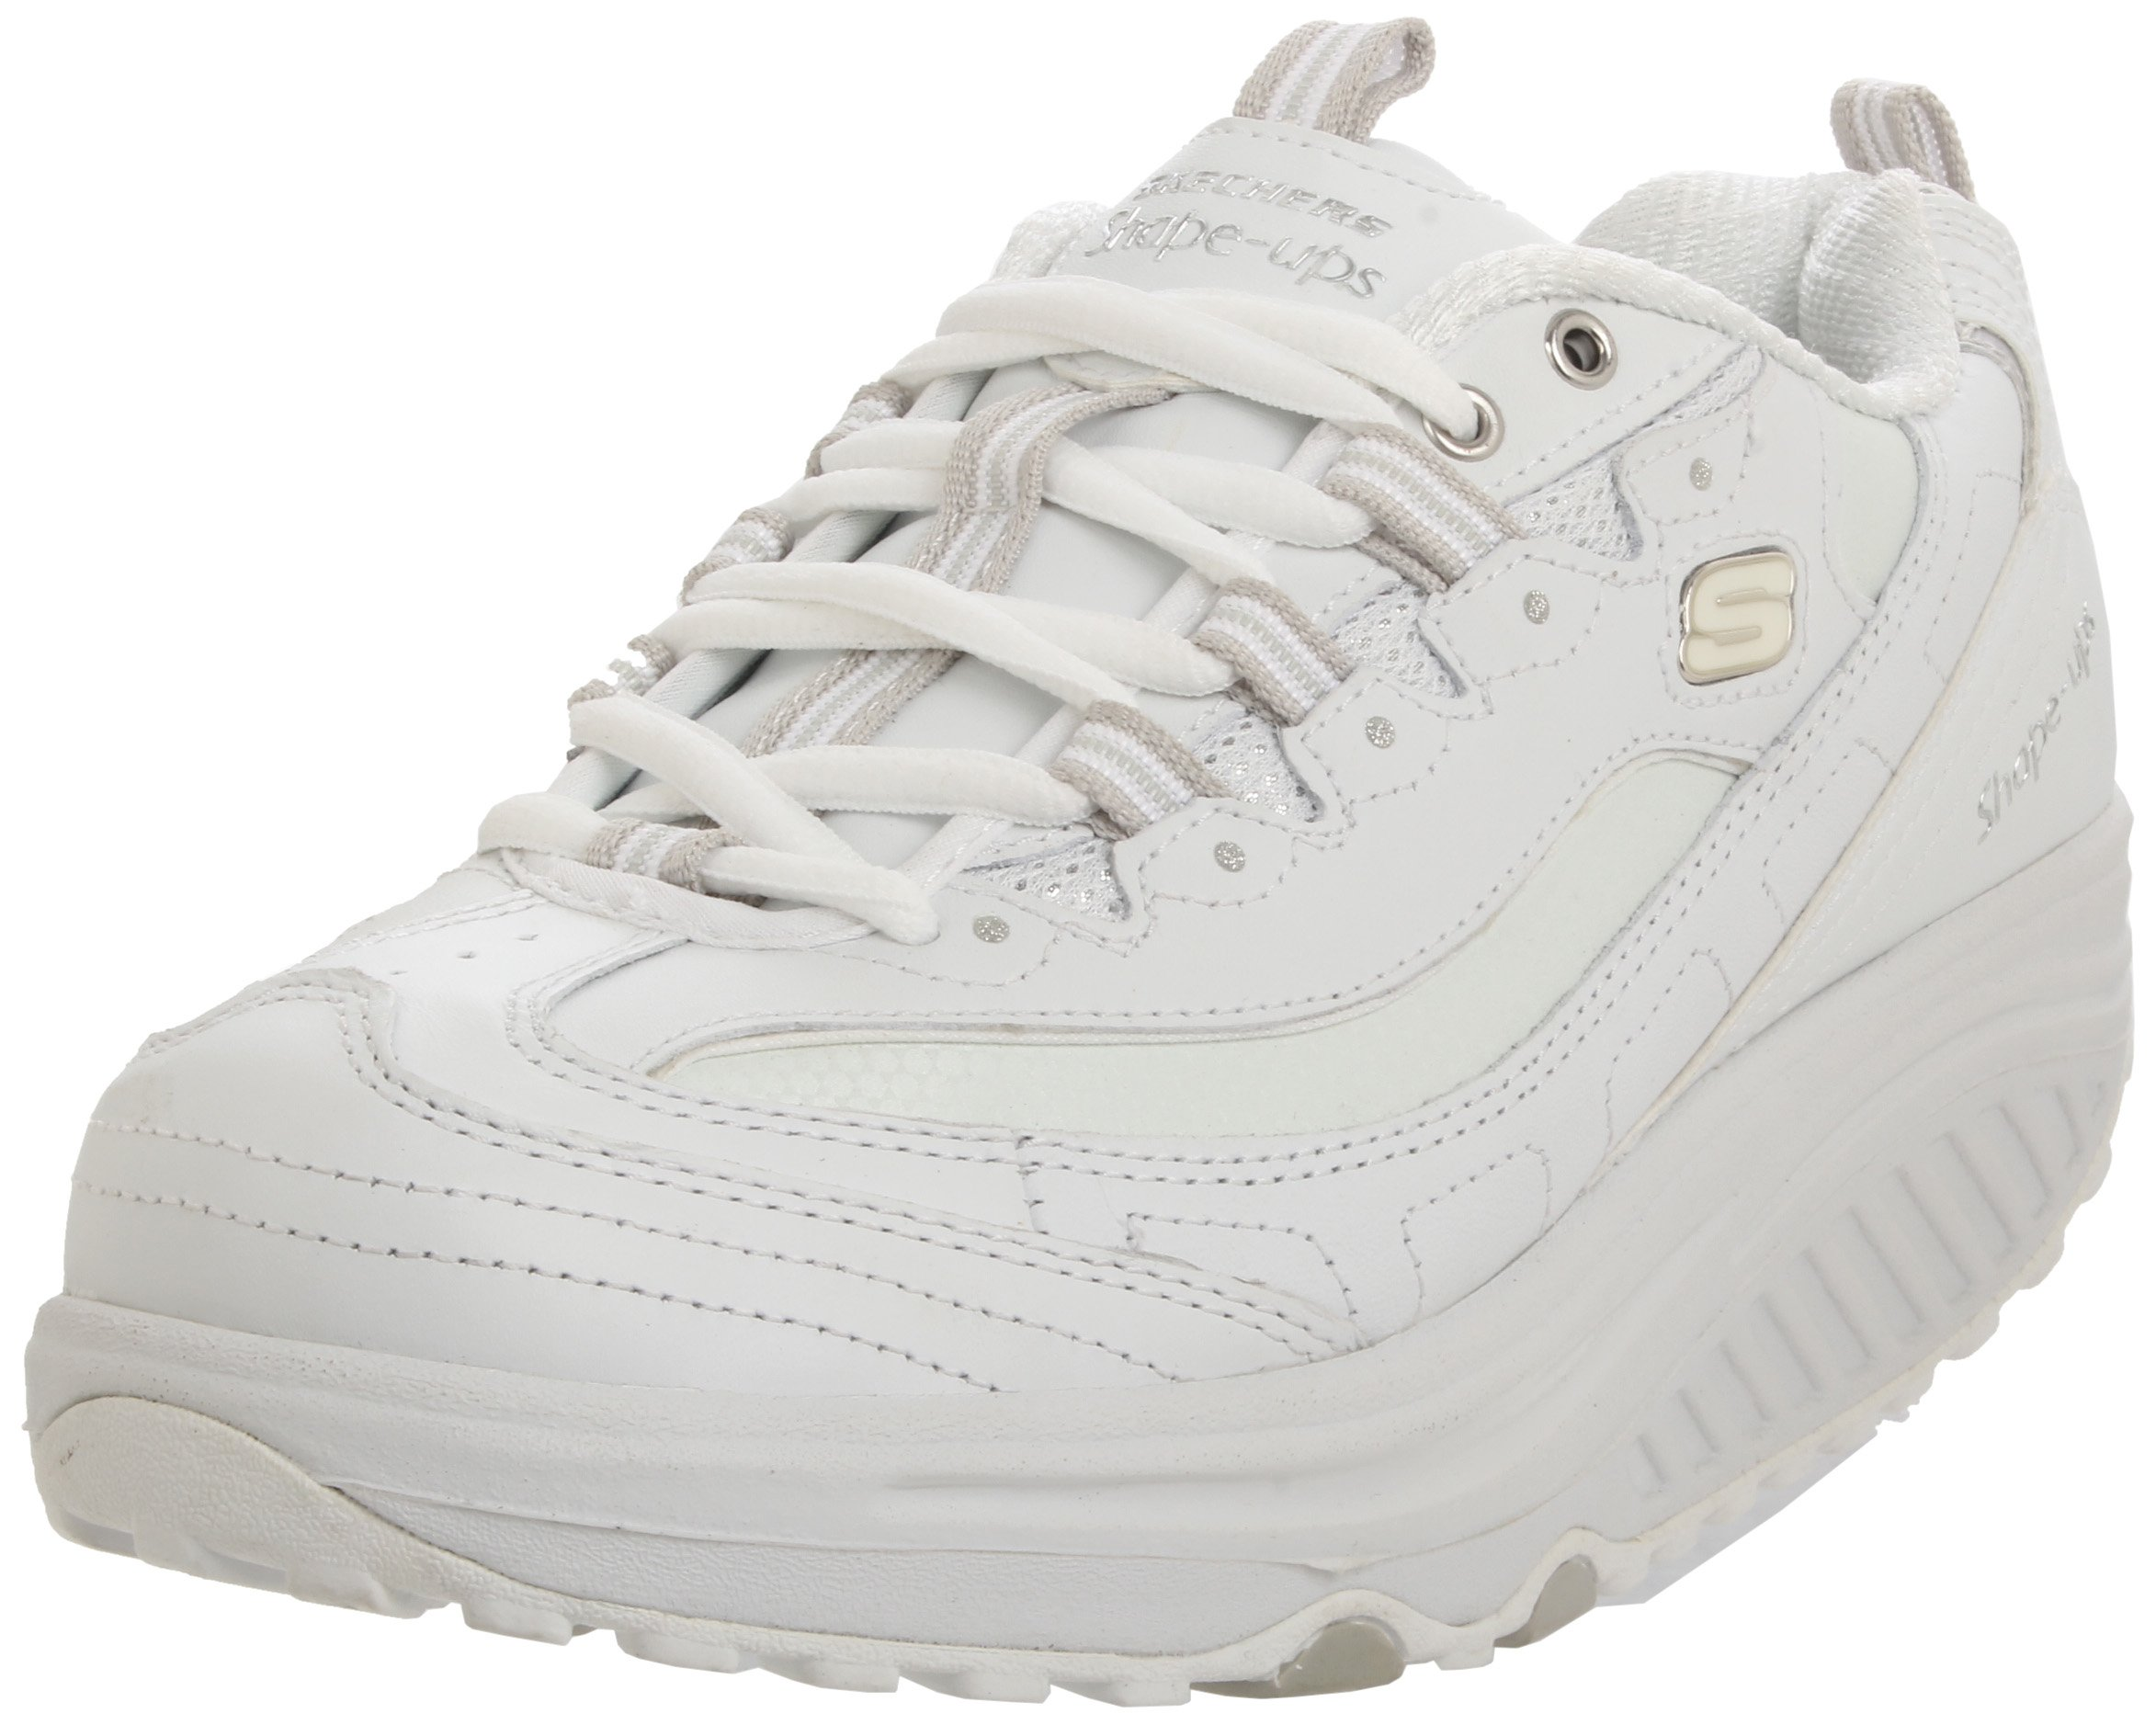 Skechers Women's Shape Ups Metabolize Fitness Work Out Sneaker,White/Silver,7.5 W US